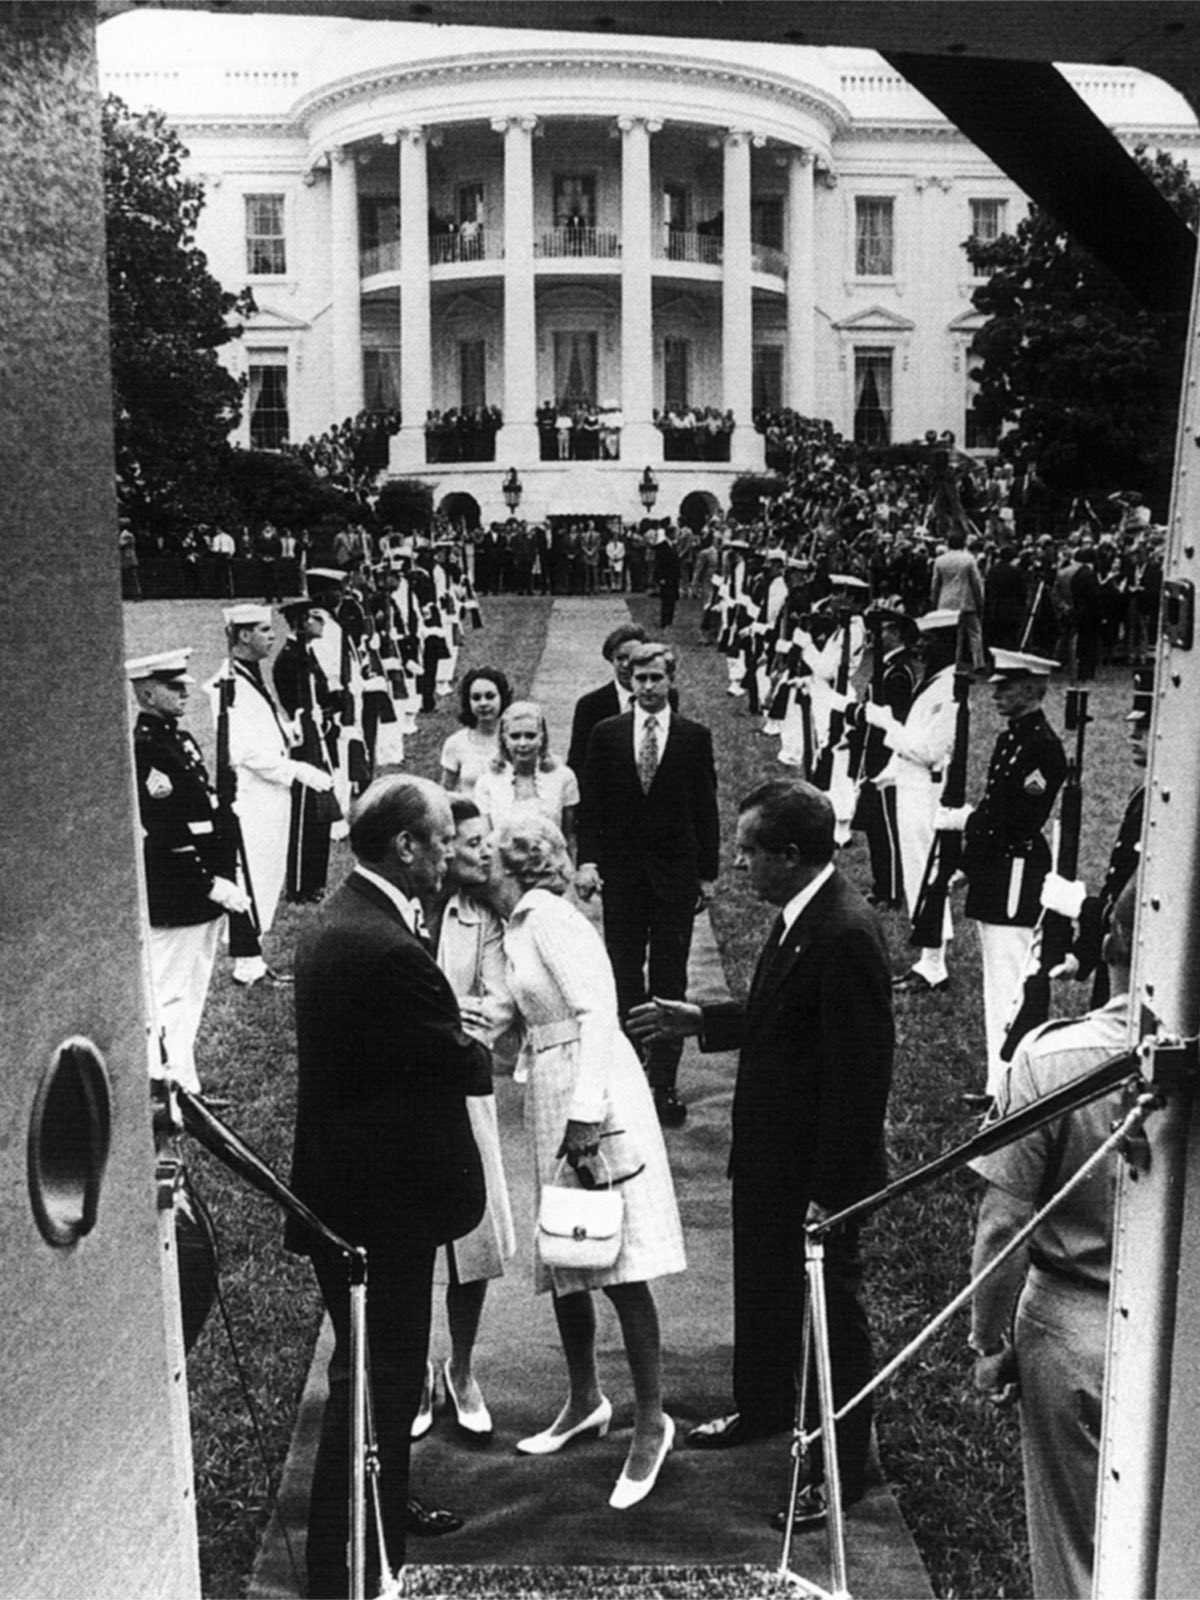 Nixon leaves the White House for the last time, the first president ever to resign mid-term